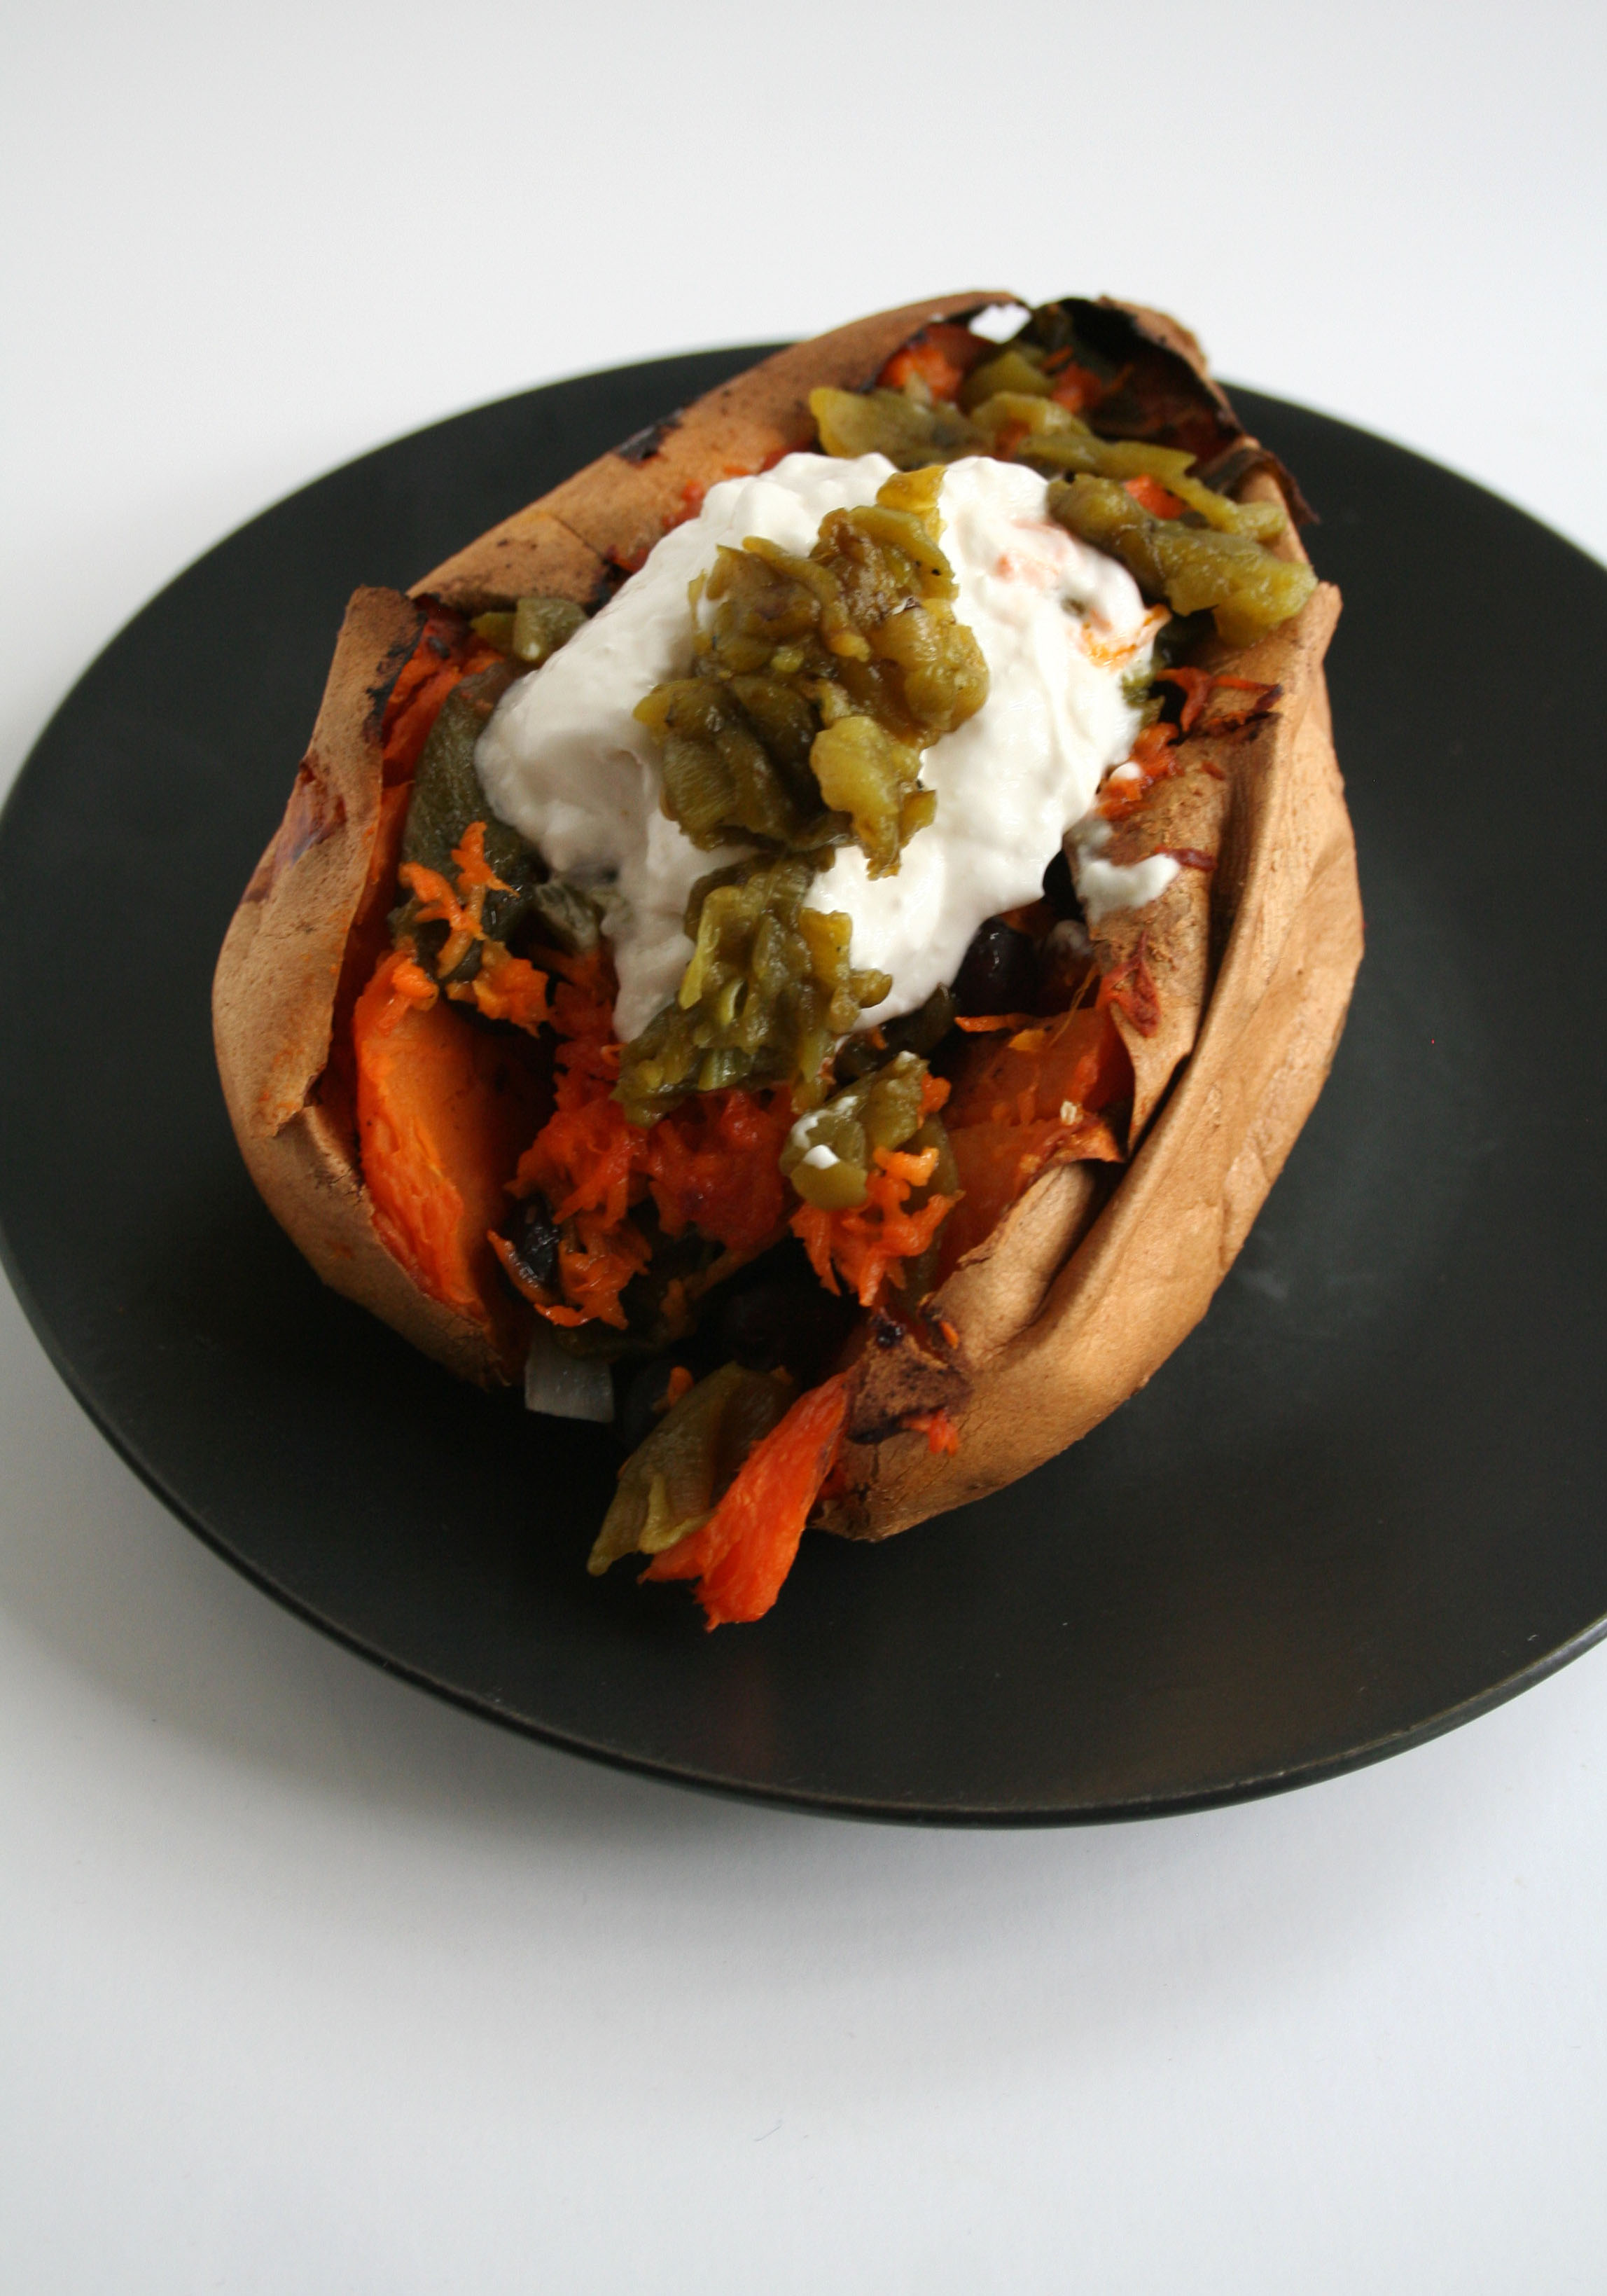 Loaded Sweet Potato on plate.